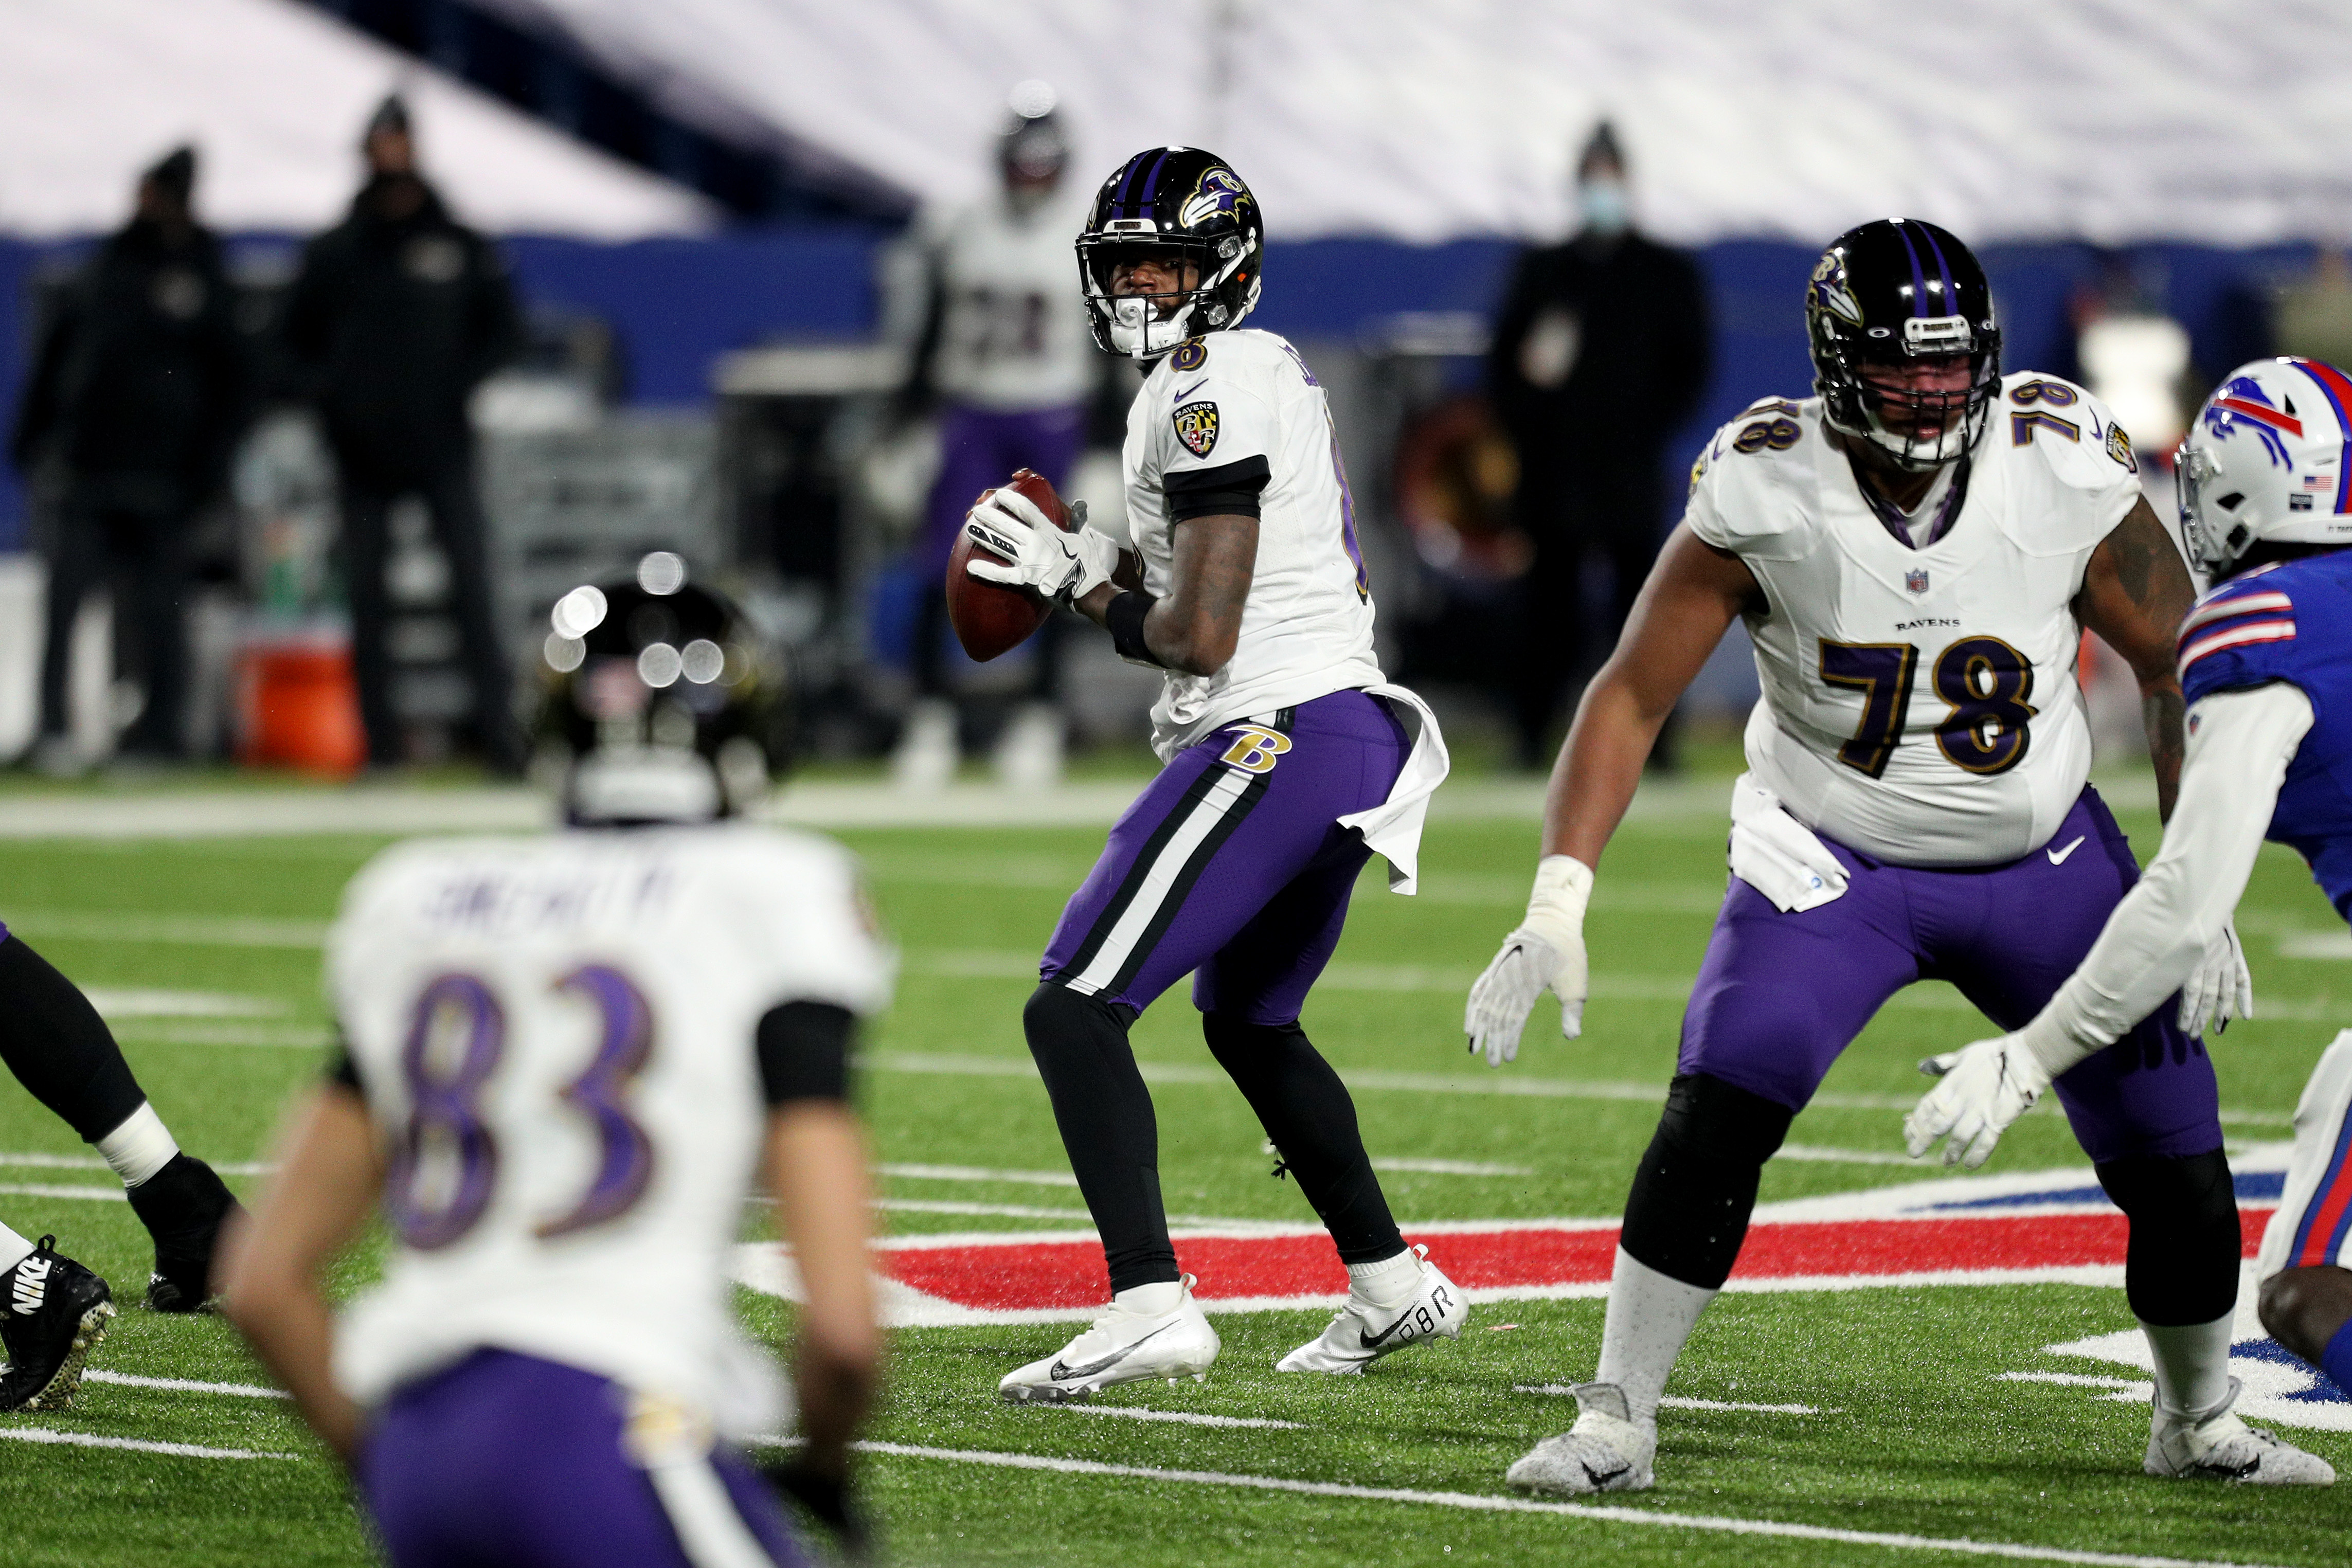 Lamar Jackson #8 of the Baltimore Ravens looks to pass during the third quarter of an AFC Divisional Playoff game against the Buffalo Bills at Bills Stadium on January 16, 2021 in Orchard Park, New York.